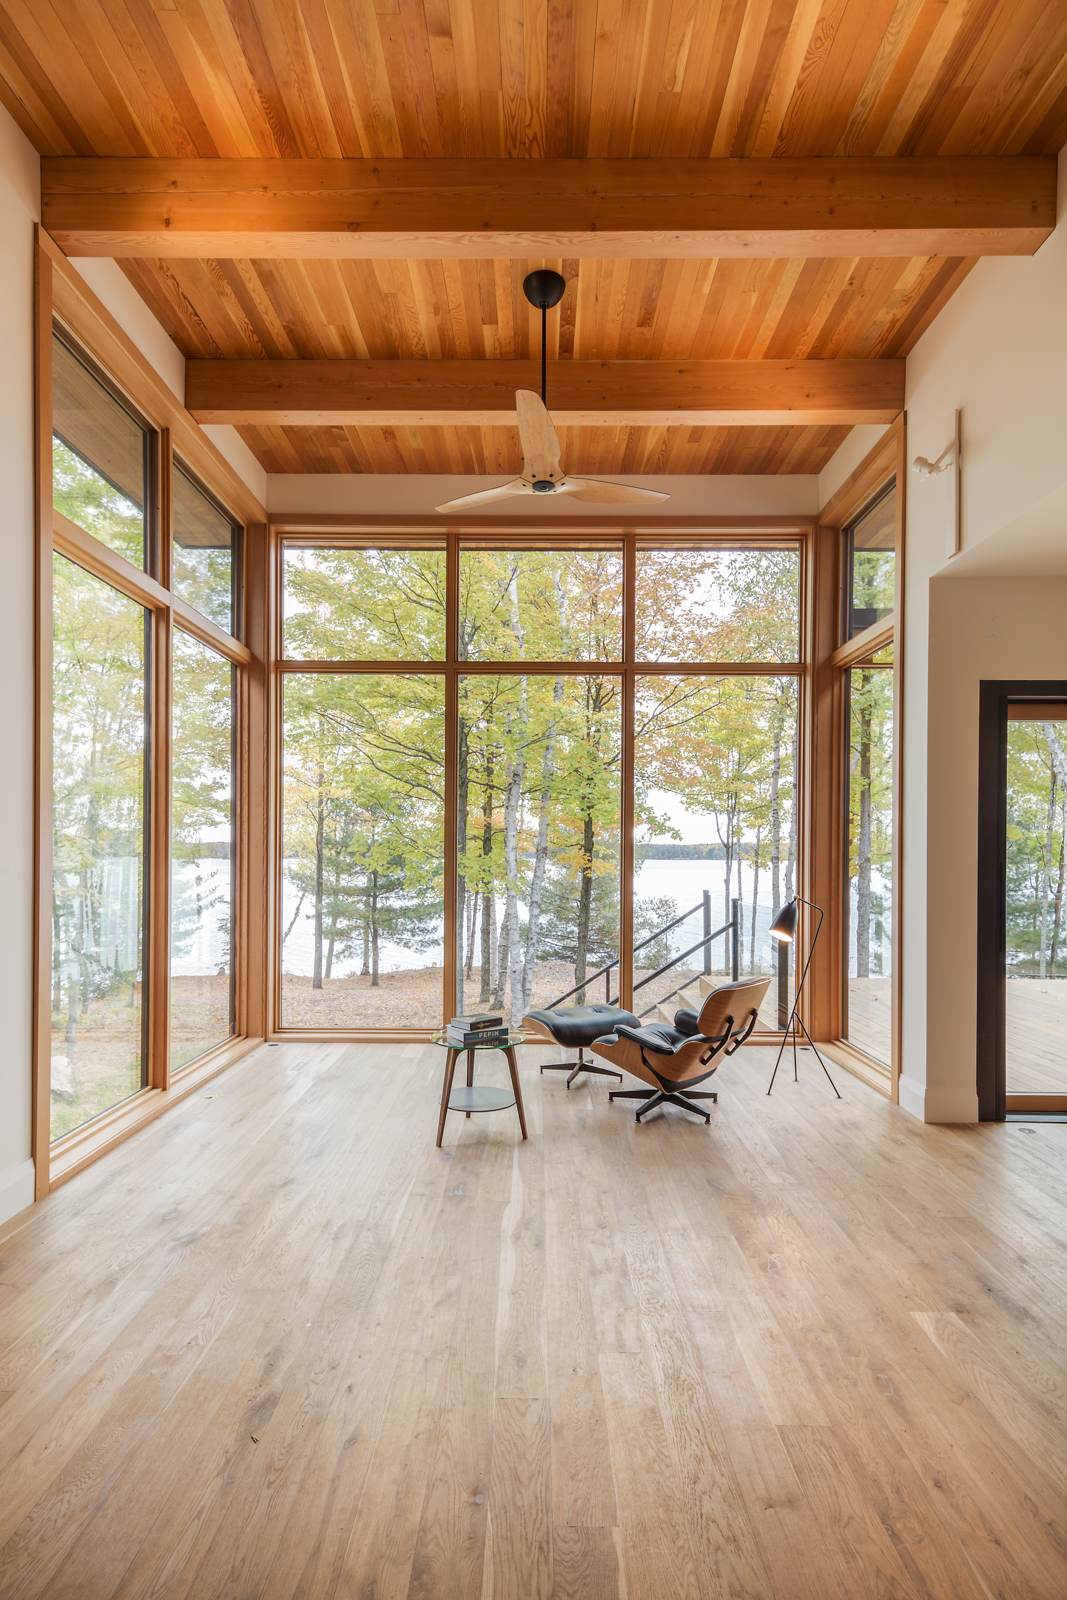 Ontario cottage reading nook with Douglas fir timber roof structure and planking, with large floor-to-ceiling windows